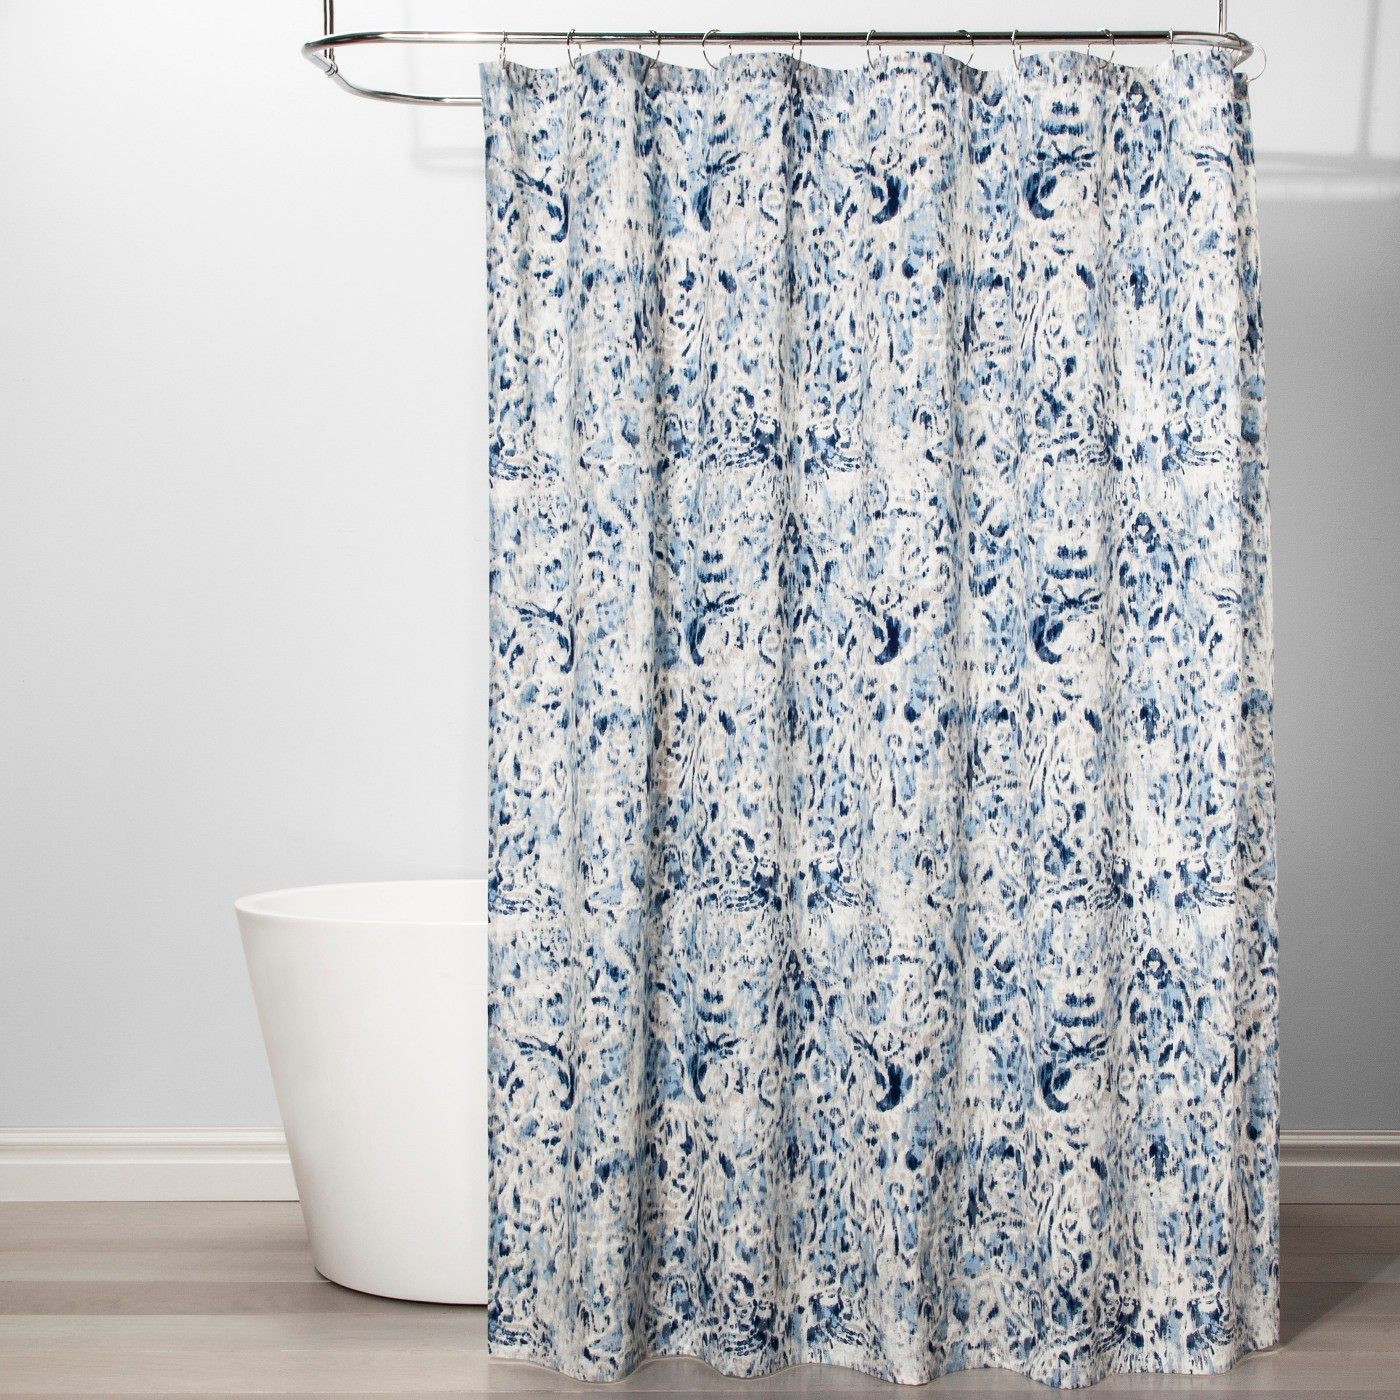 Ikat Design Shower Curtain Borage Blue - Threshold™ - image 1 of 2